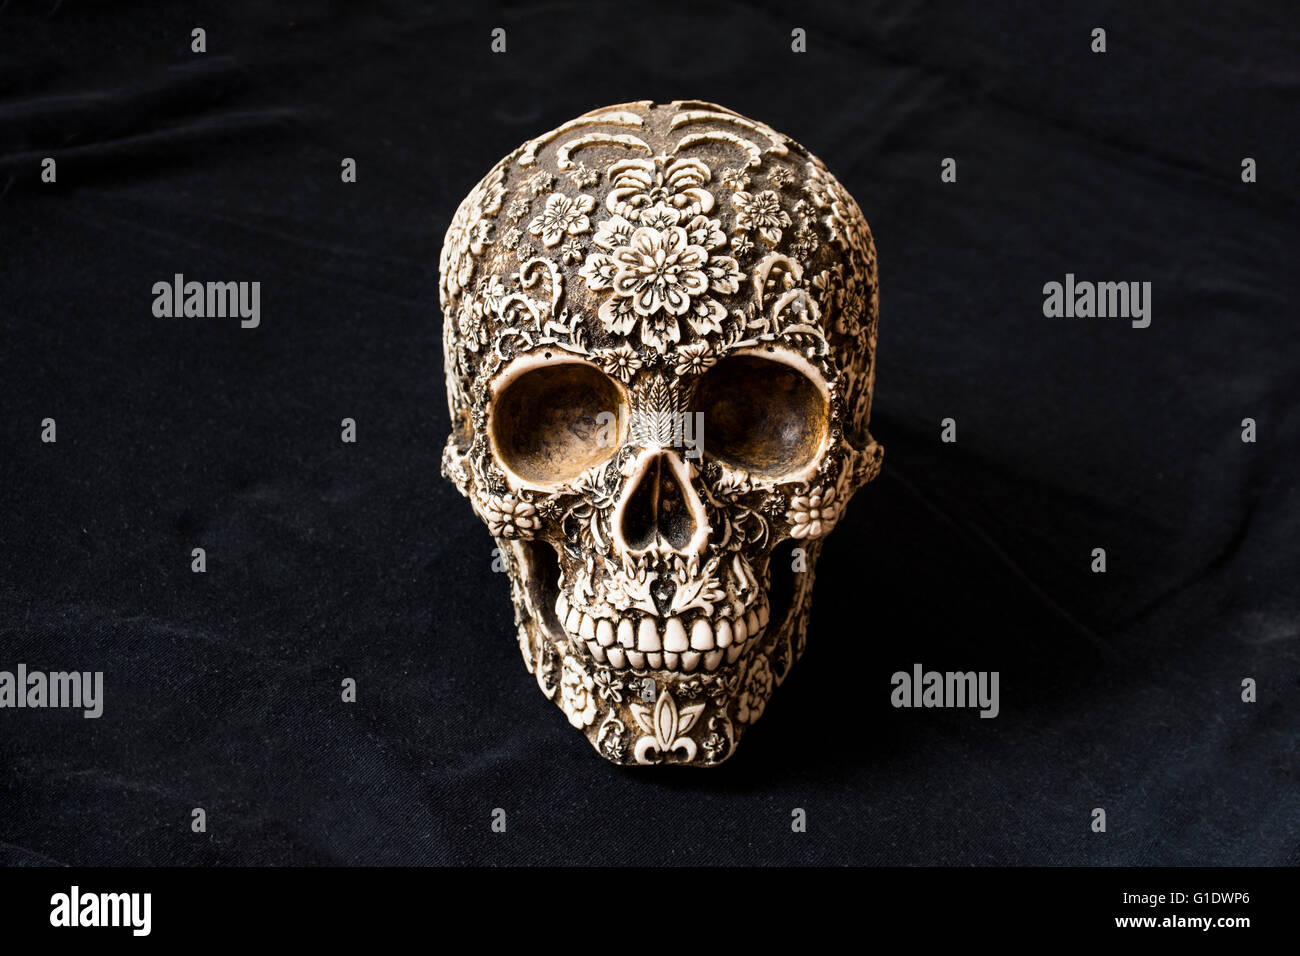 Artisan model of a decorated skull used for 'Dia de Muertos' Representation of the death or 'Parca', - Stock Image